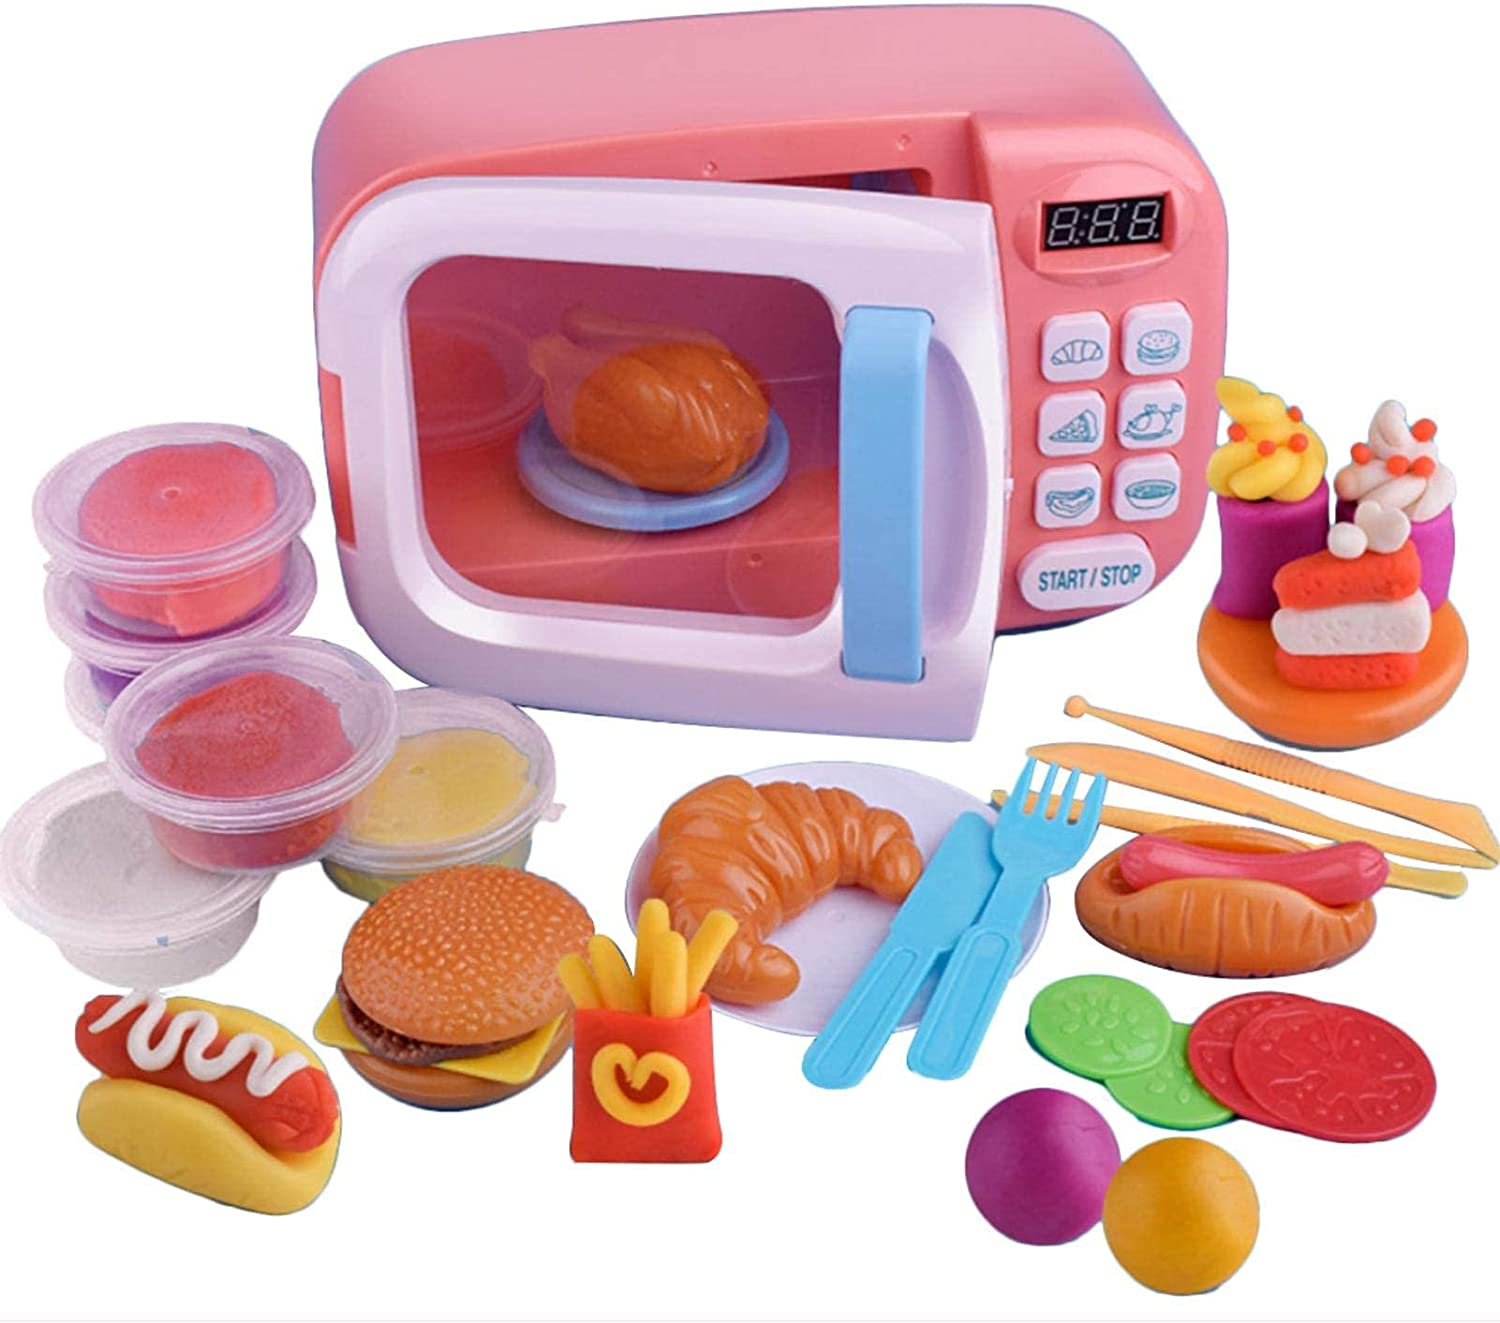 WuLL Microwave New mail order Large-scale sale Play Kitchen Set Kids Ov Electronic Pretend